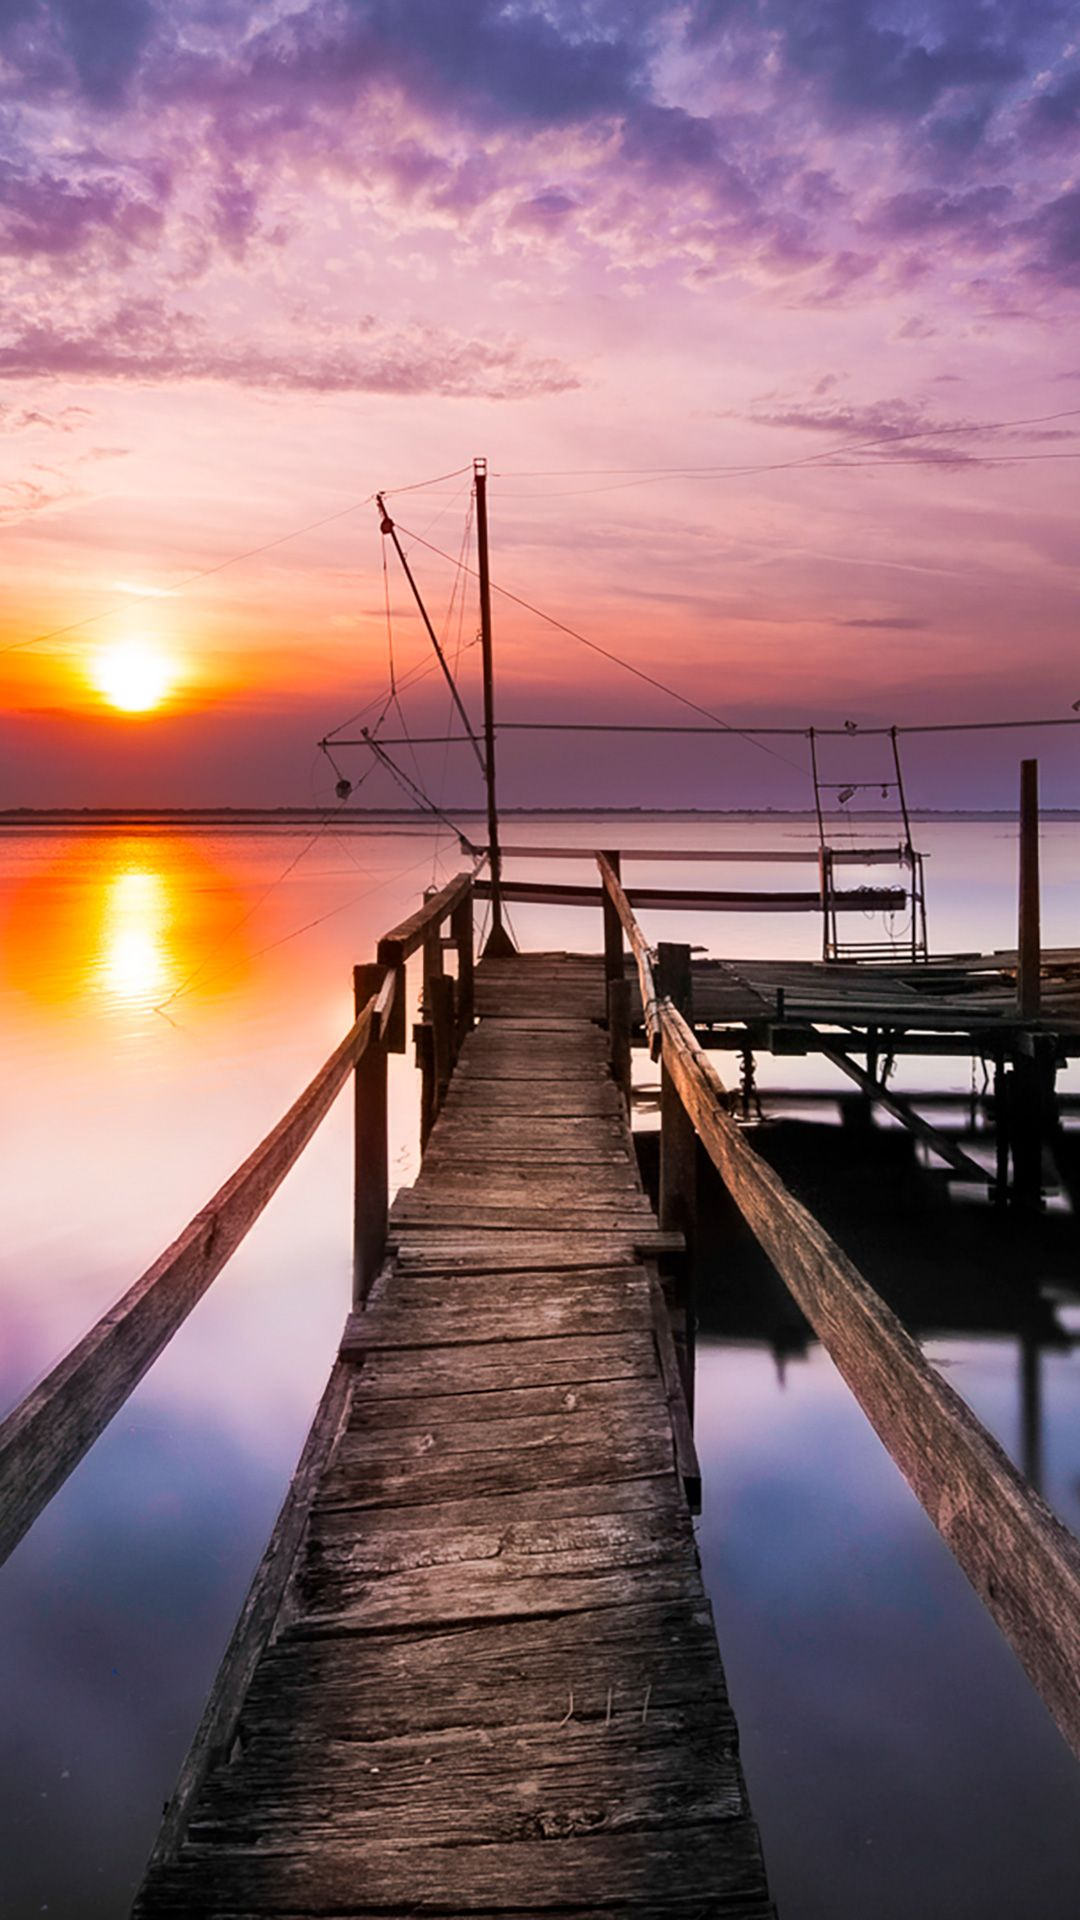 Pin By Zorjur On Sunset In 2019 Pinterest Mobile Wallpaper Cool